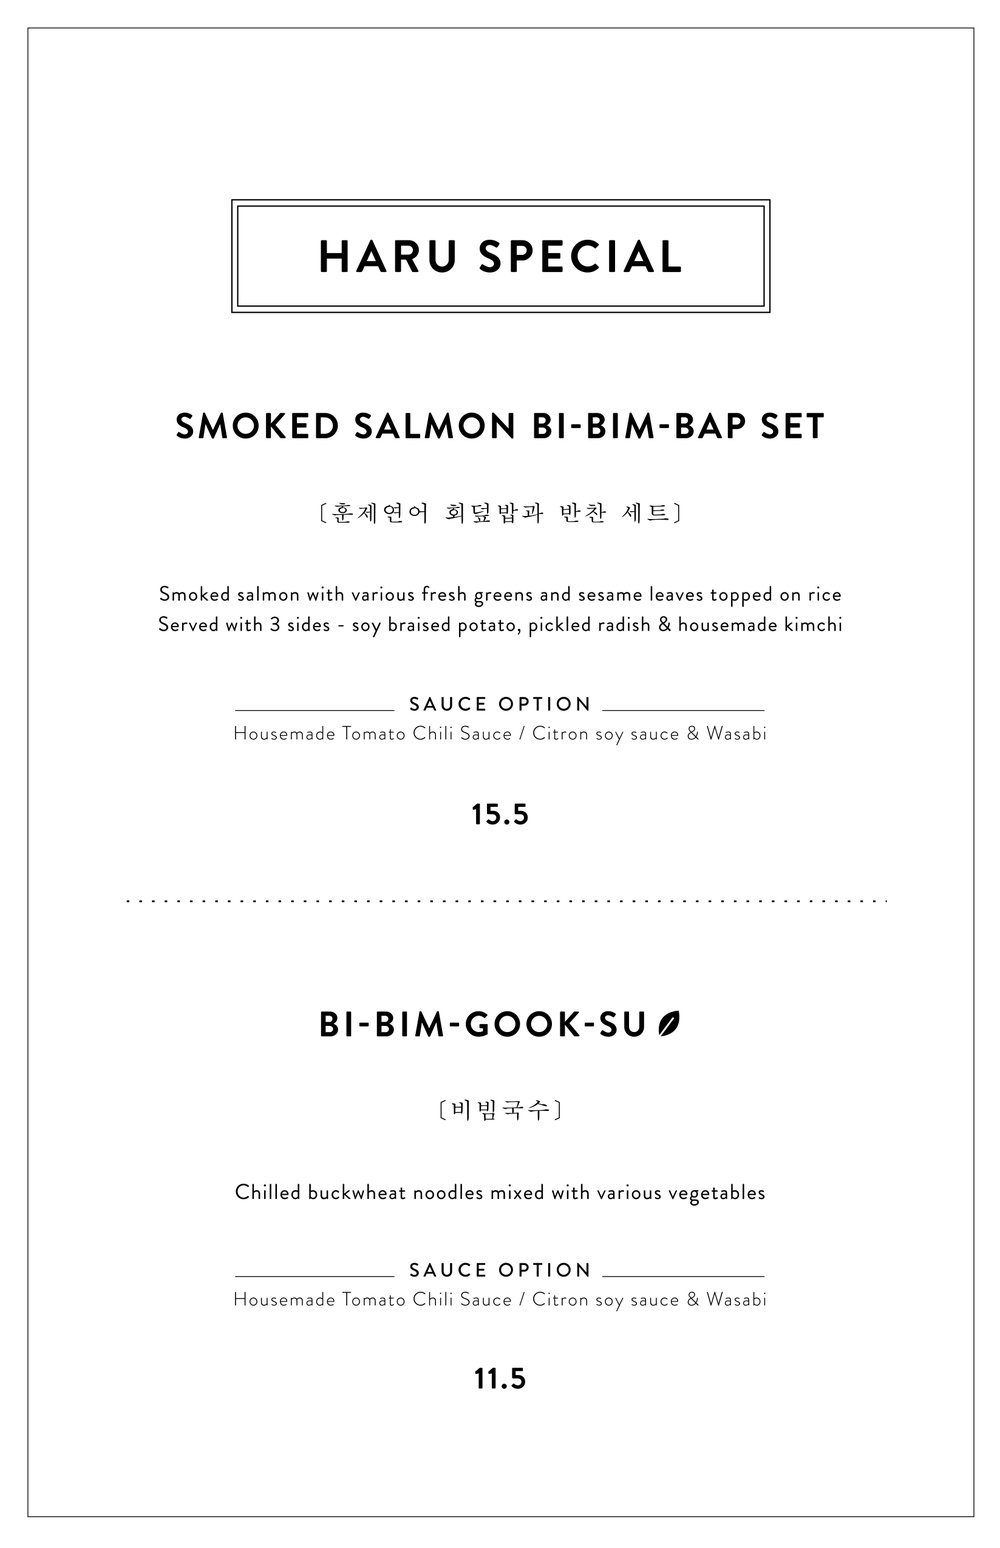 smoked_salmon_menu.jpg